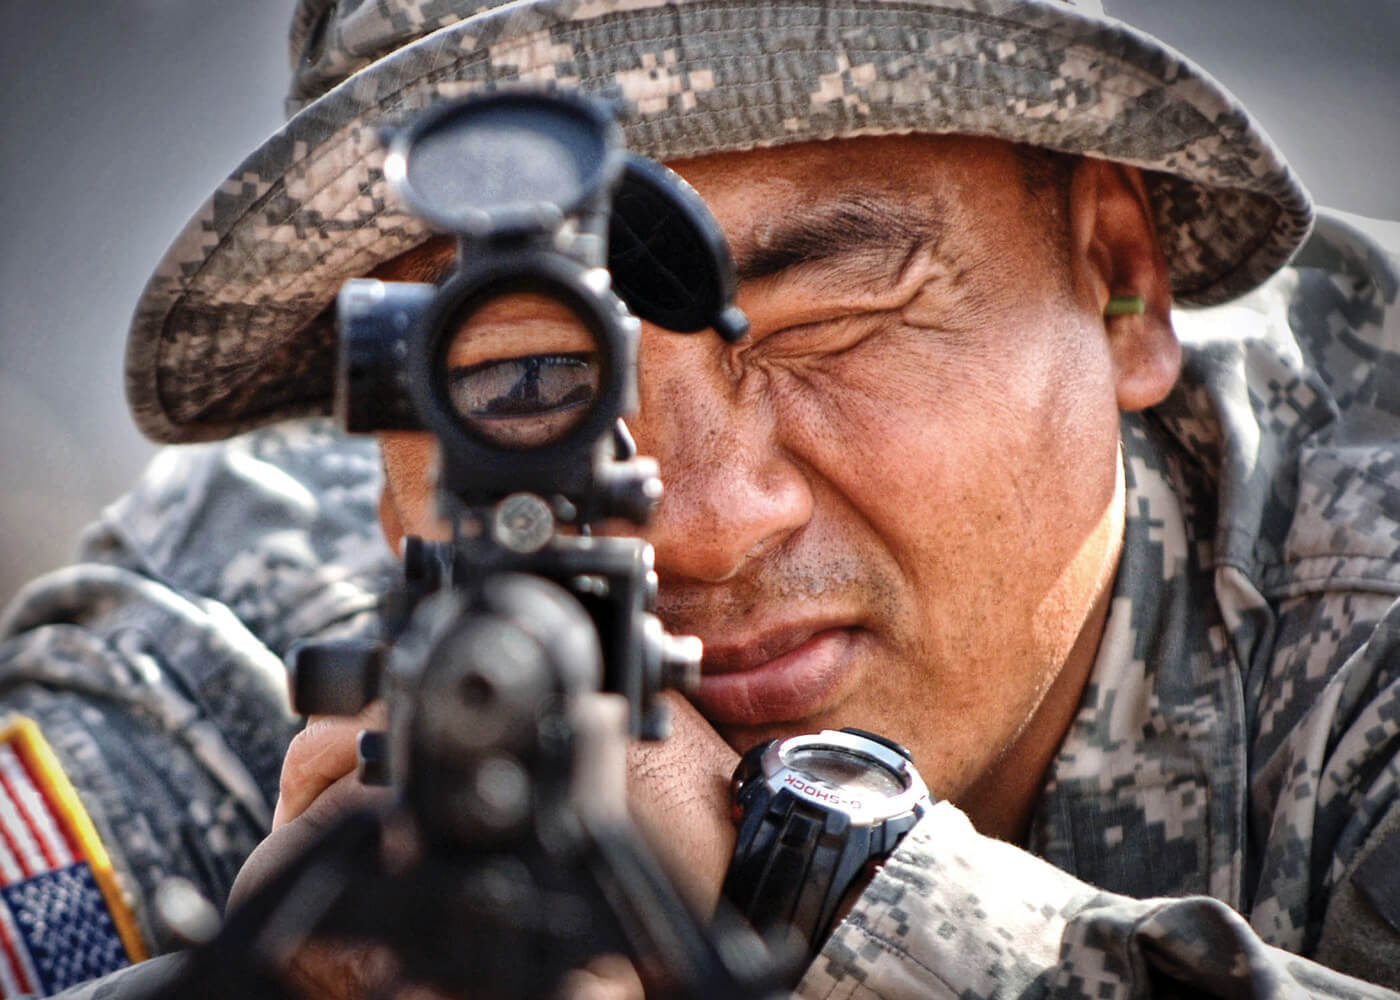 When you really need to reach out and touch something or someone, a riflescope can increase your accuracy and effectiveness and extend the outer limits of your boundaries.